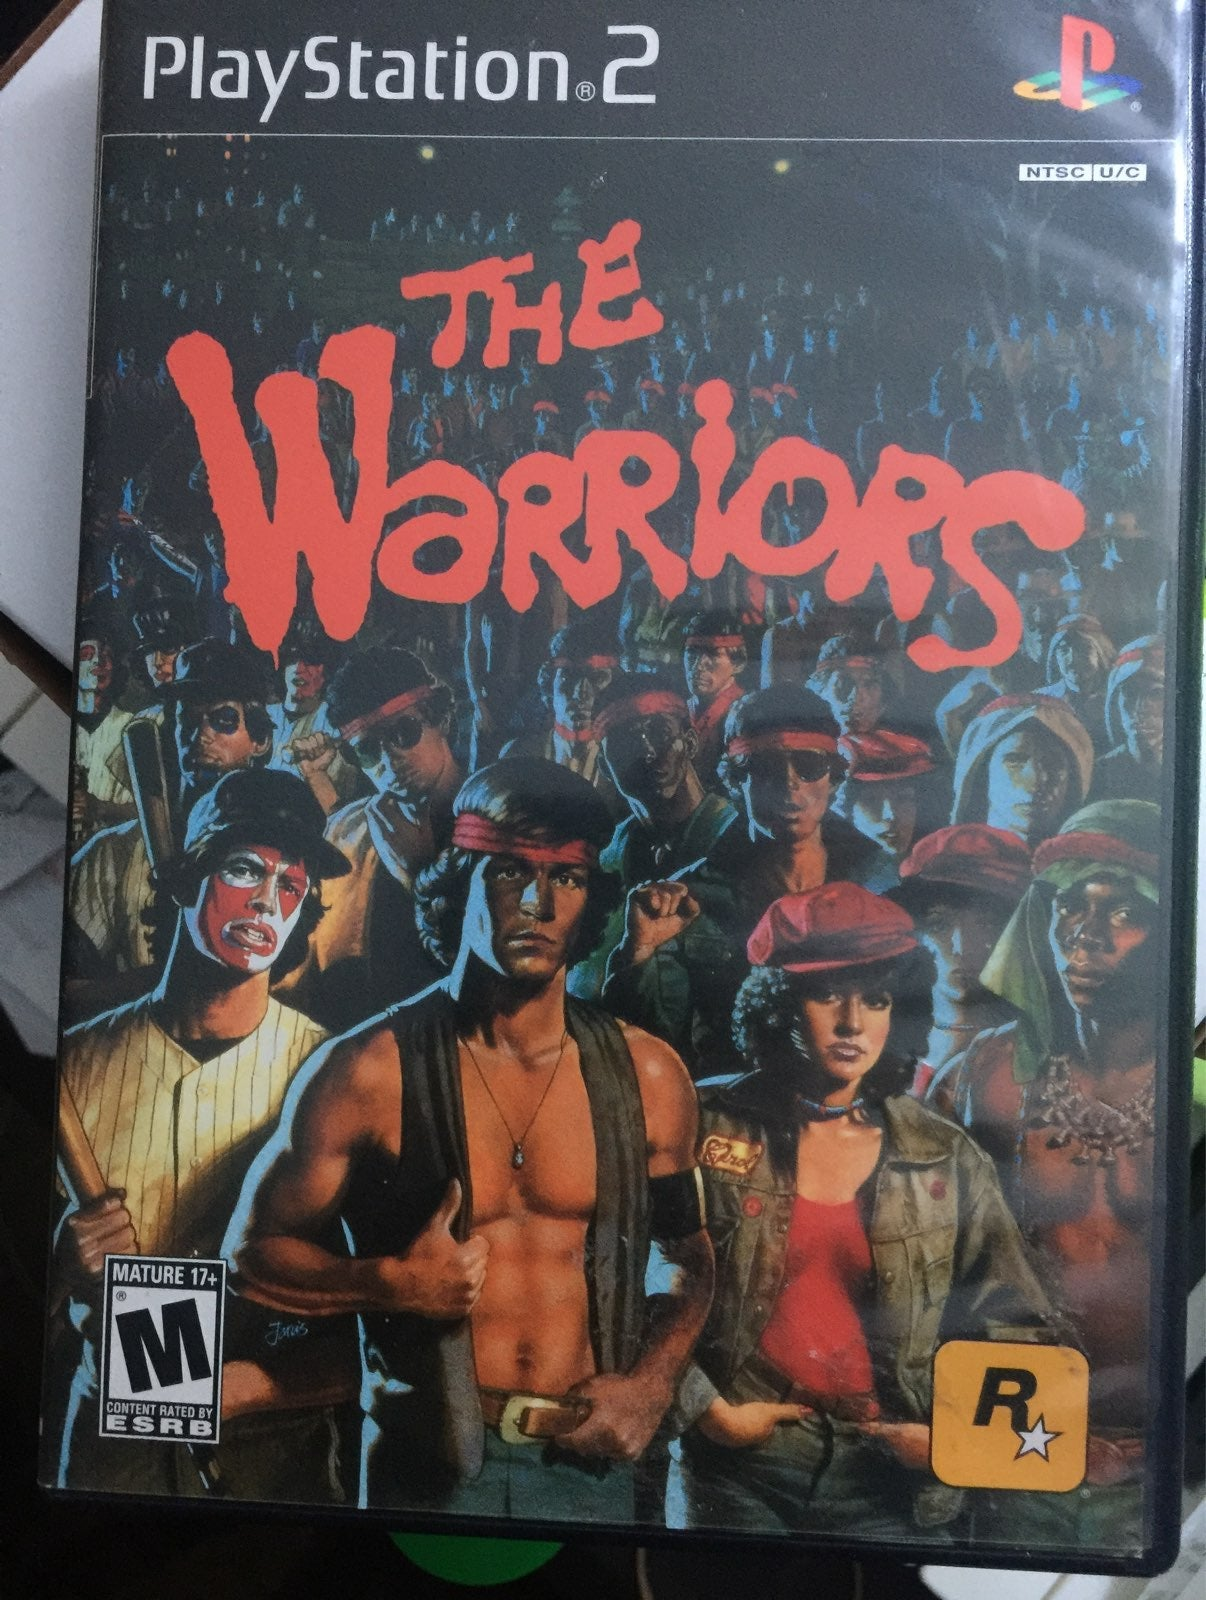 The Warriors on Playstation 2